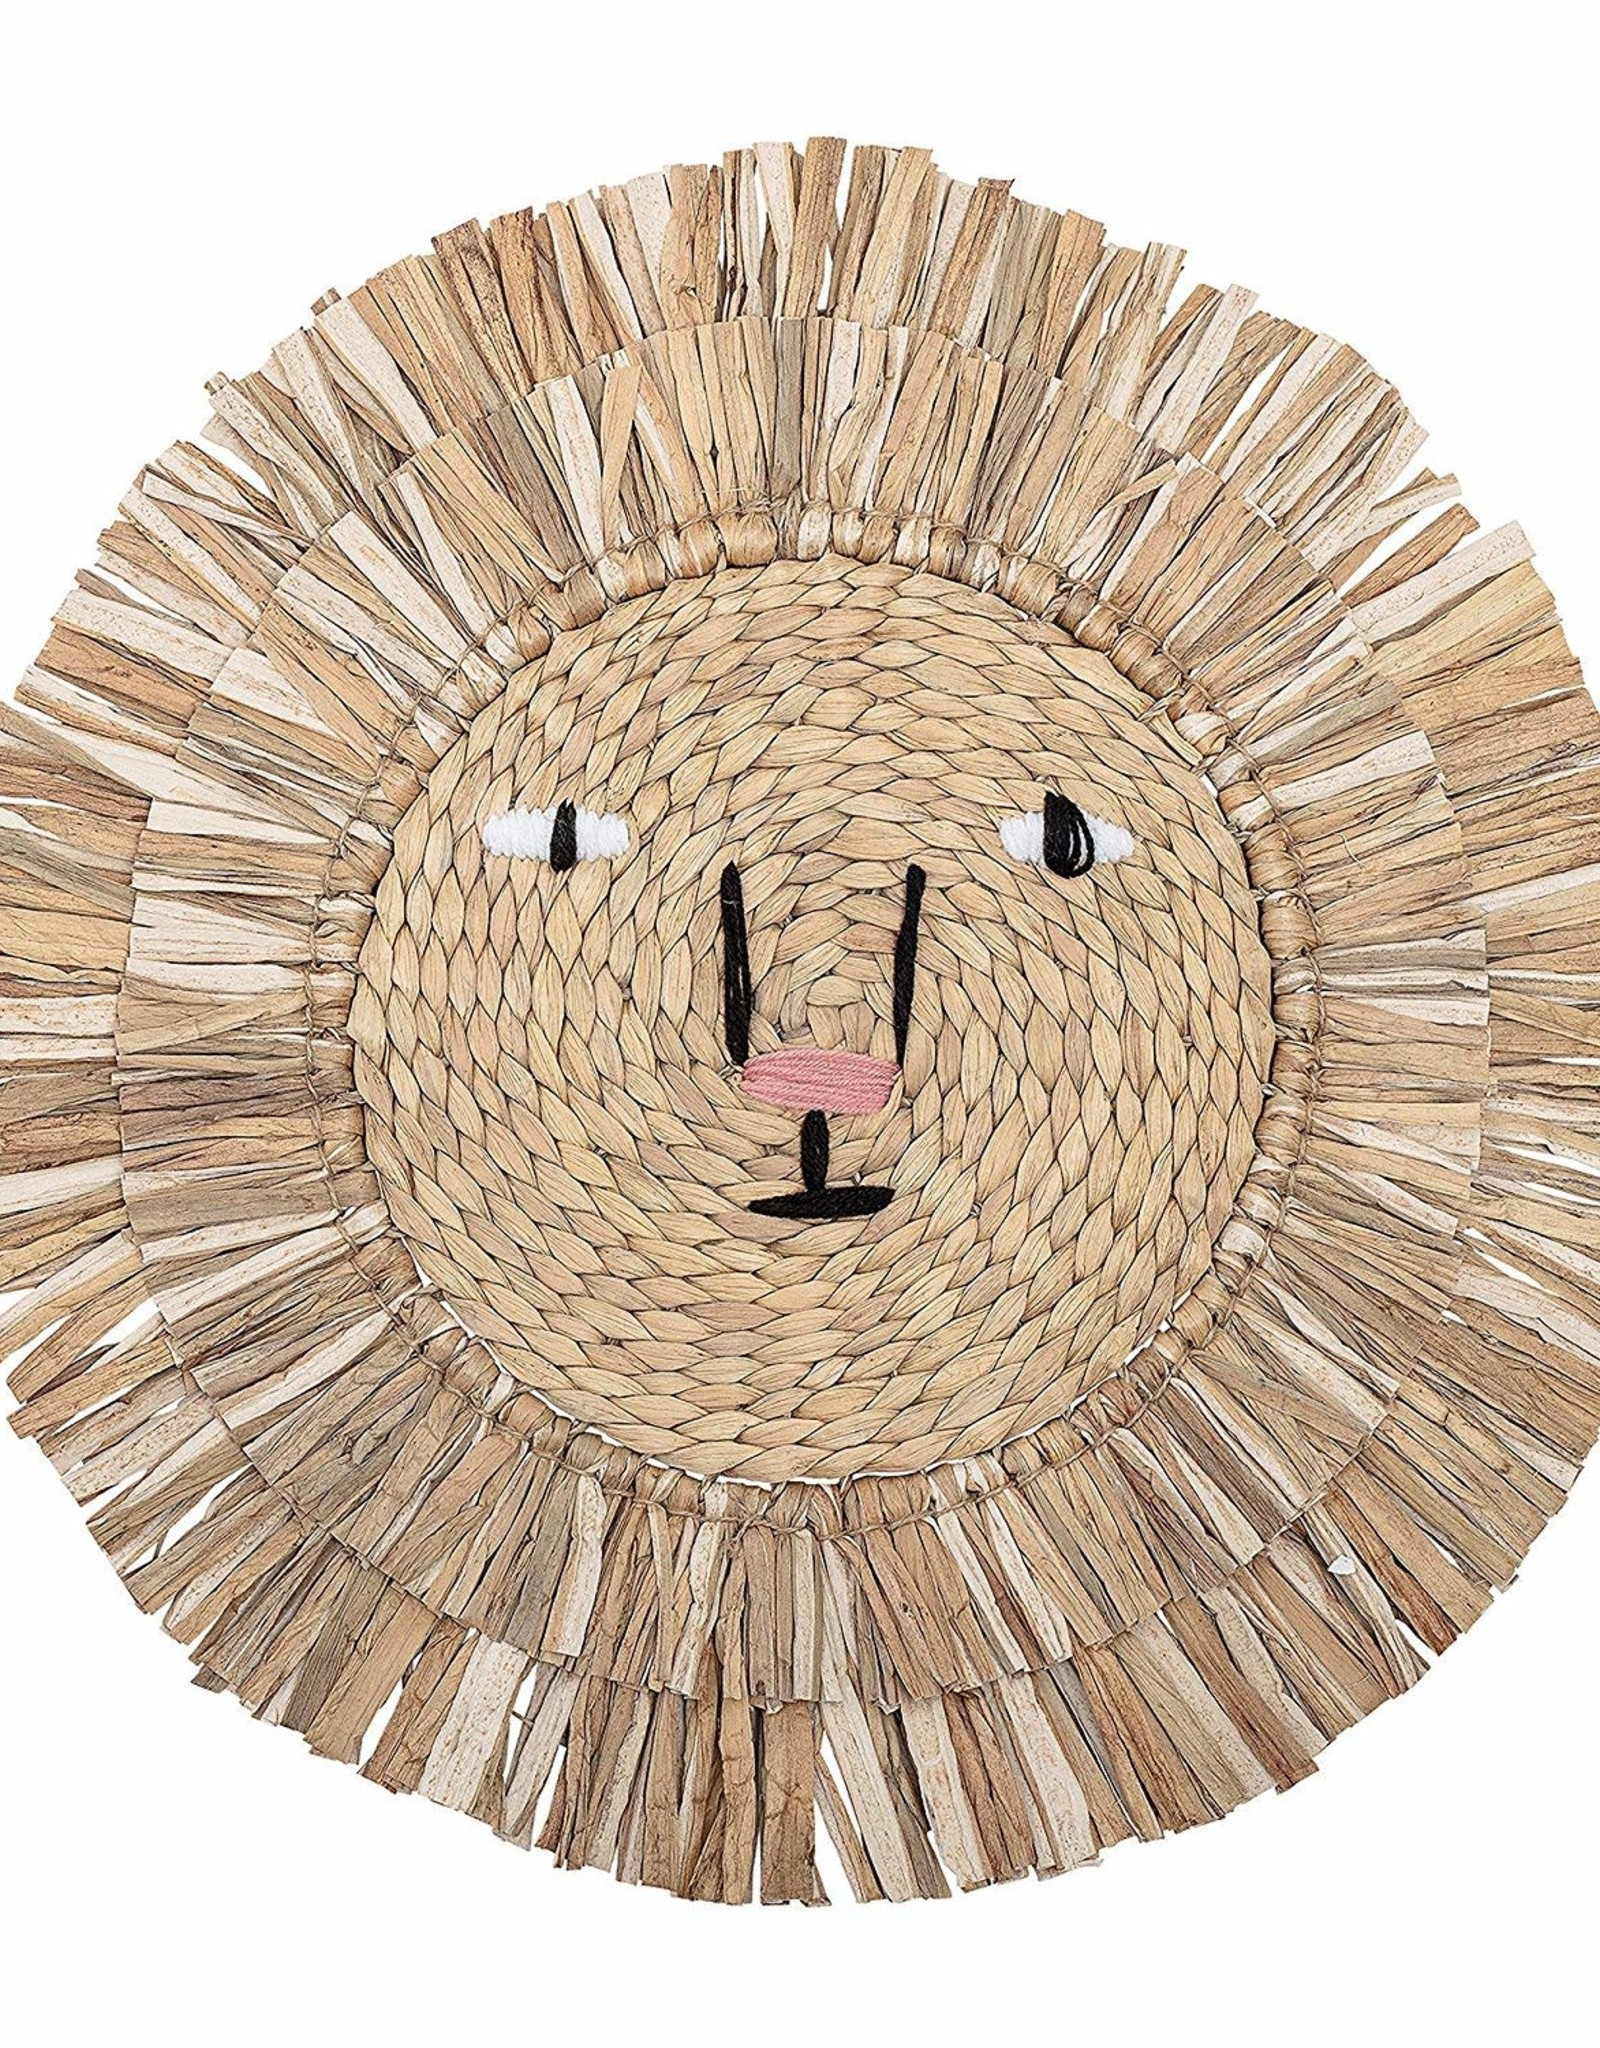 Bloomingville Round Water Hyacinth Wall Decor -Embroidered Lion Face